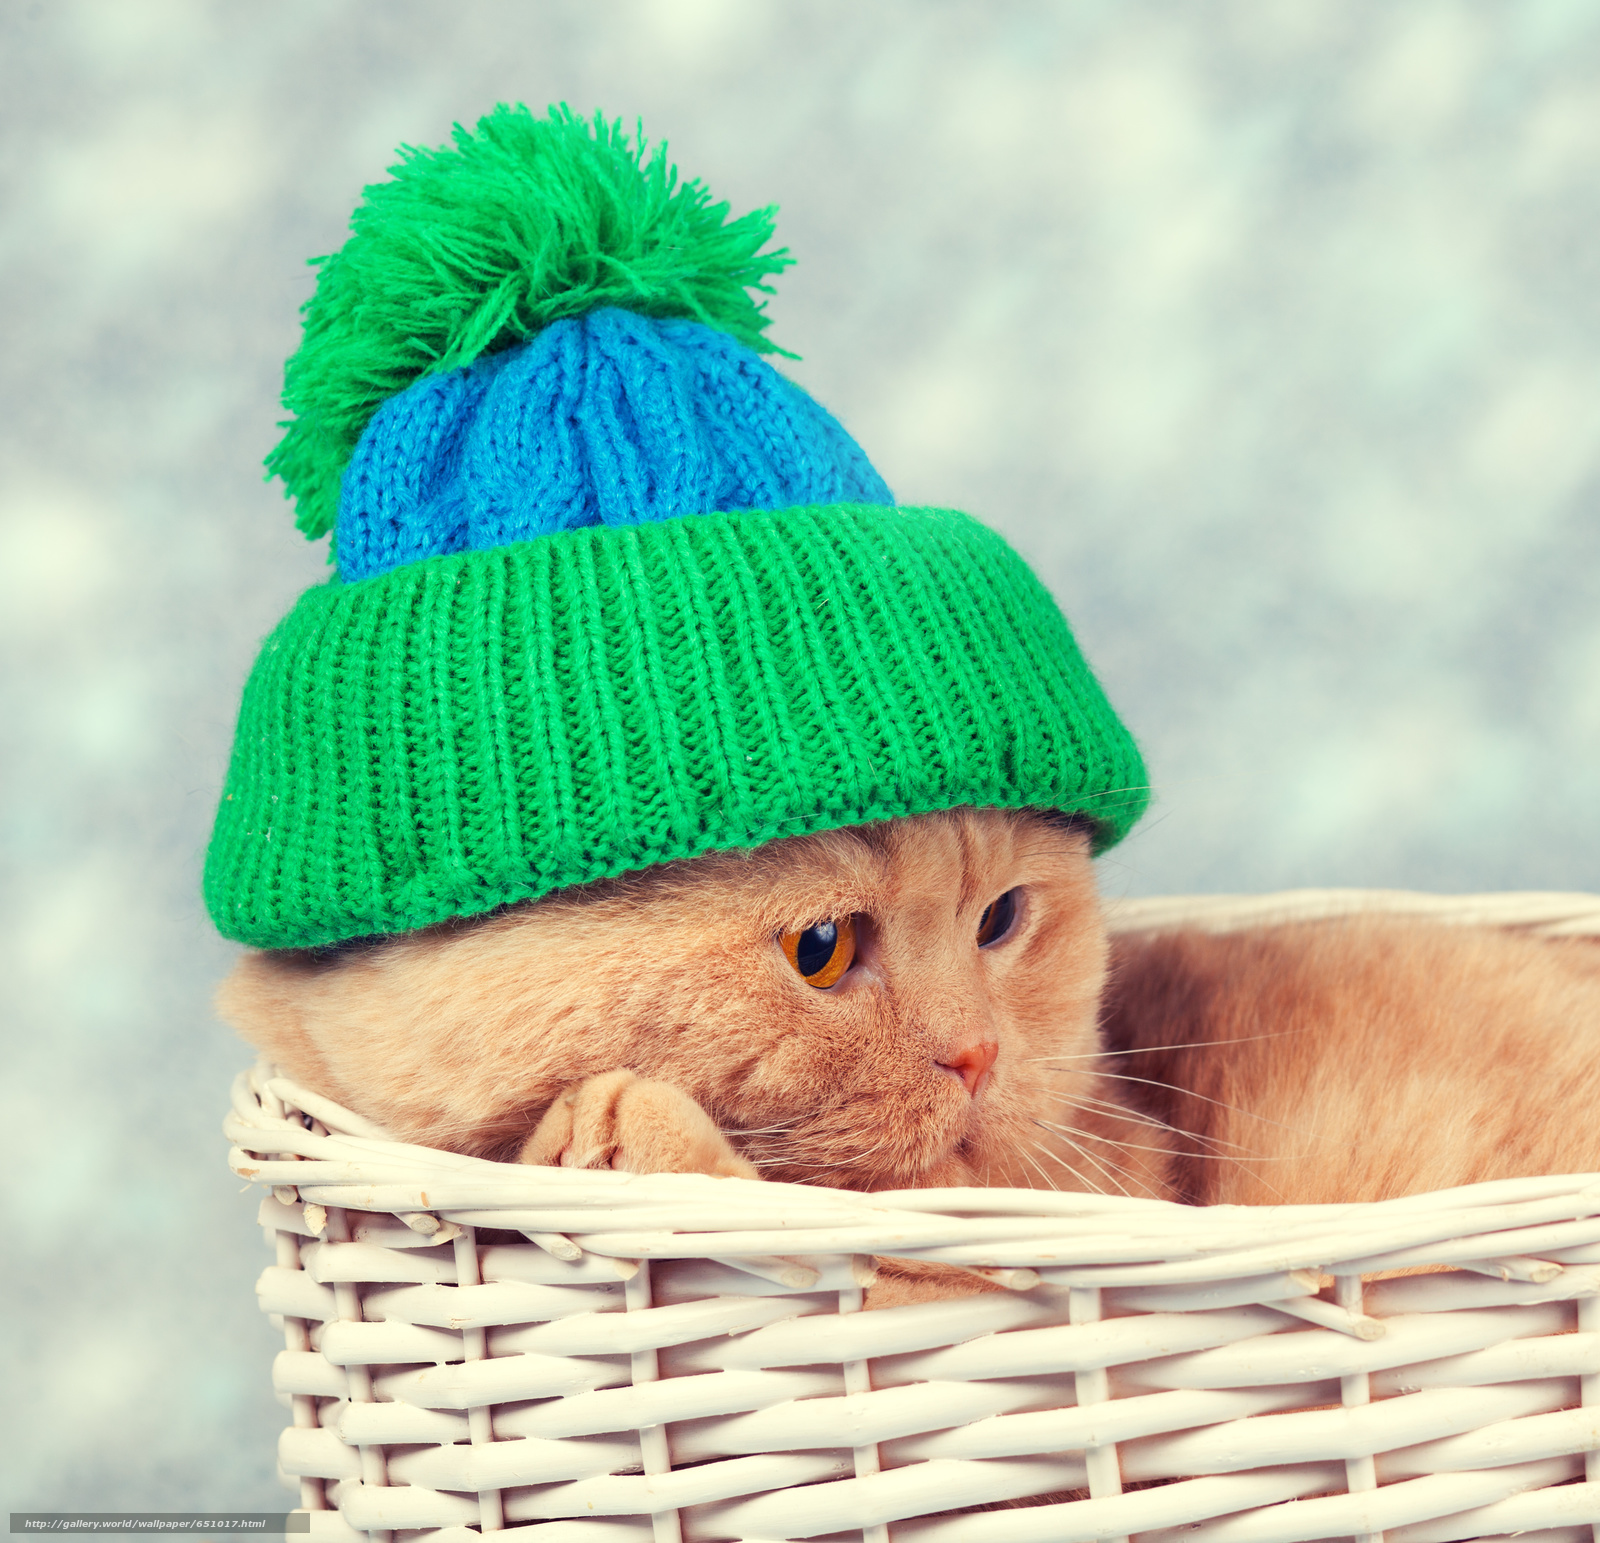 Download wallpaper COTE,  cat,  Cap,  basket free desktop wallpaper in the resolution 3366x3247 — picture №651017